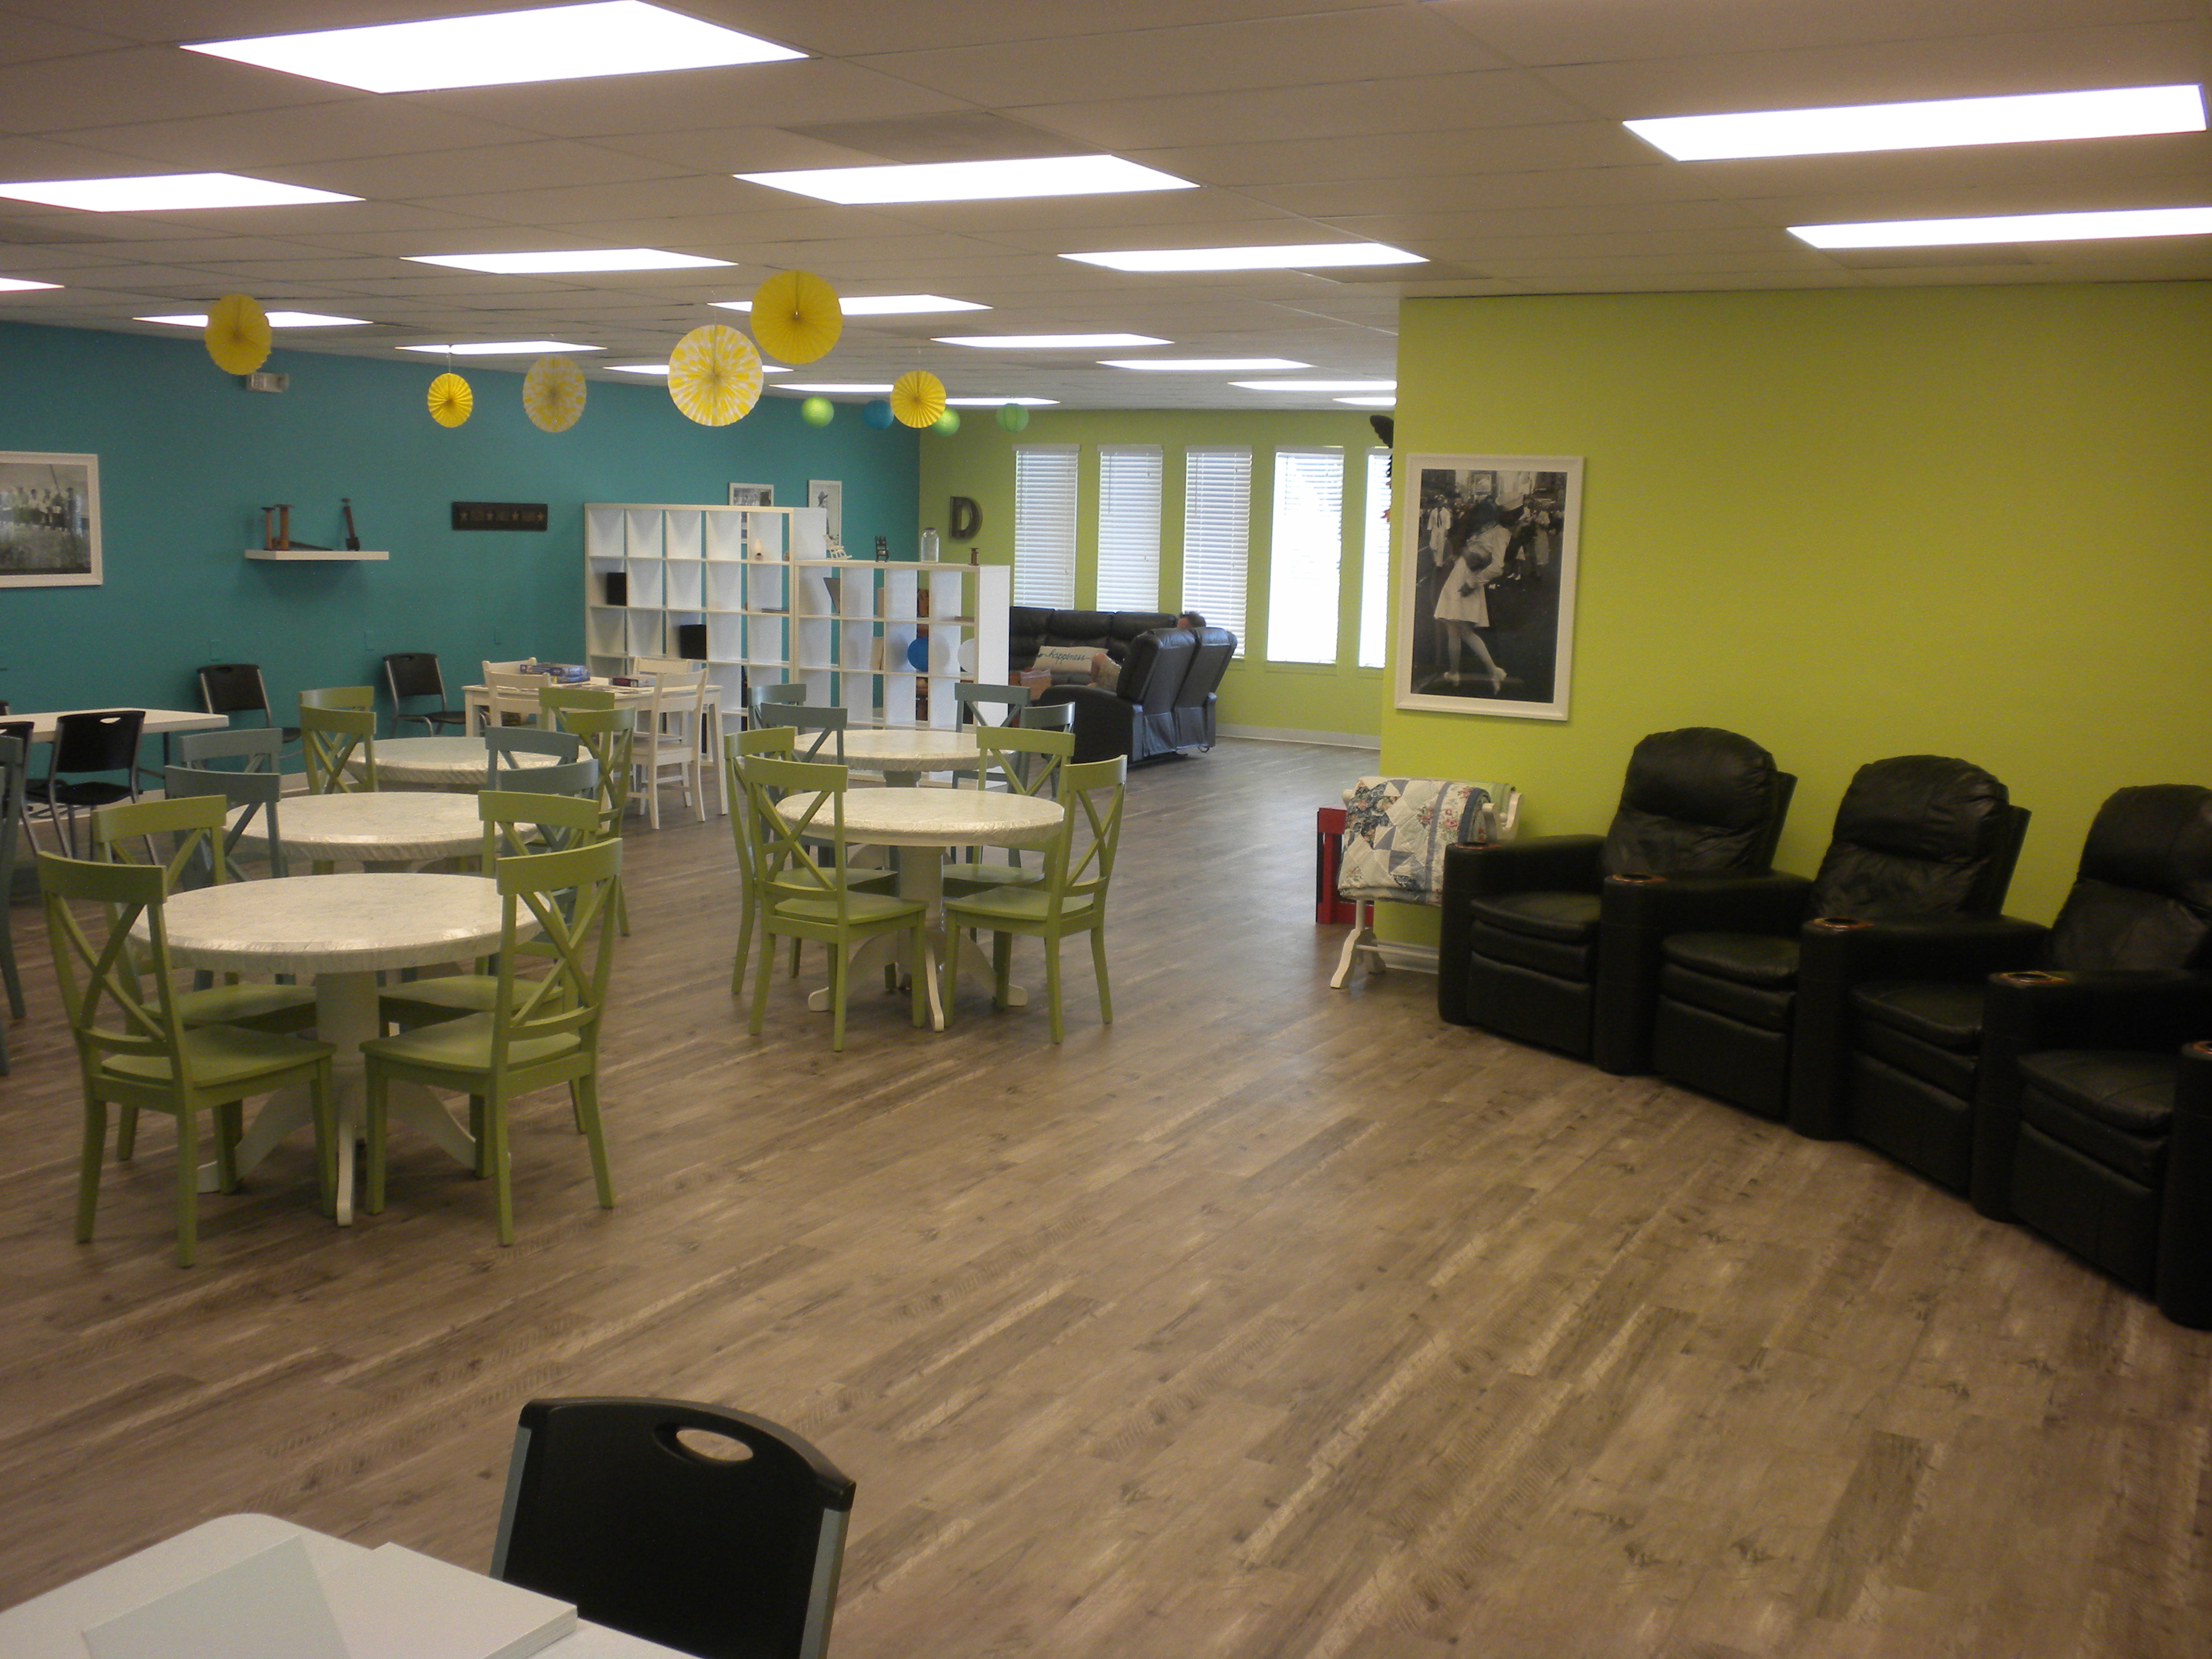 Daycations adult day care day room